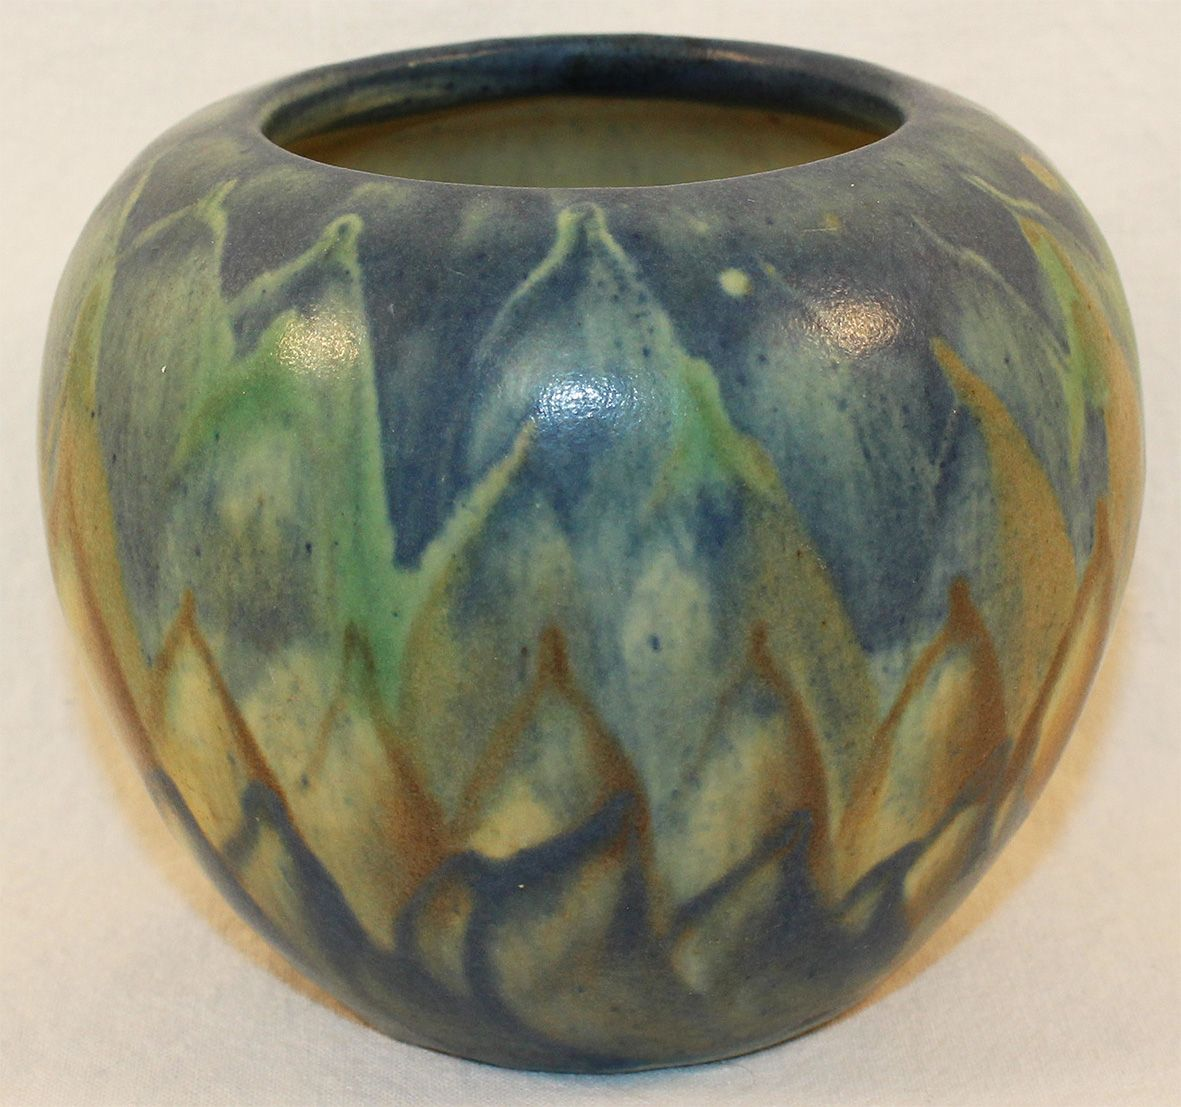 Peters and reed landsun small vase from just art pottery peters peters and reed landsun small vase from just art pottery reviewsmspy